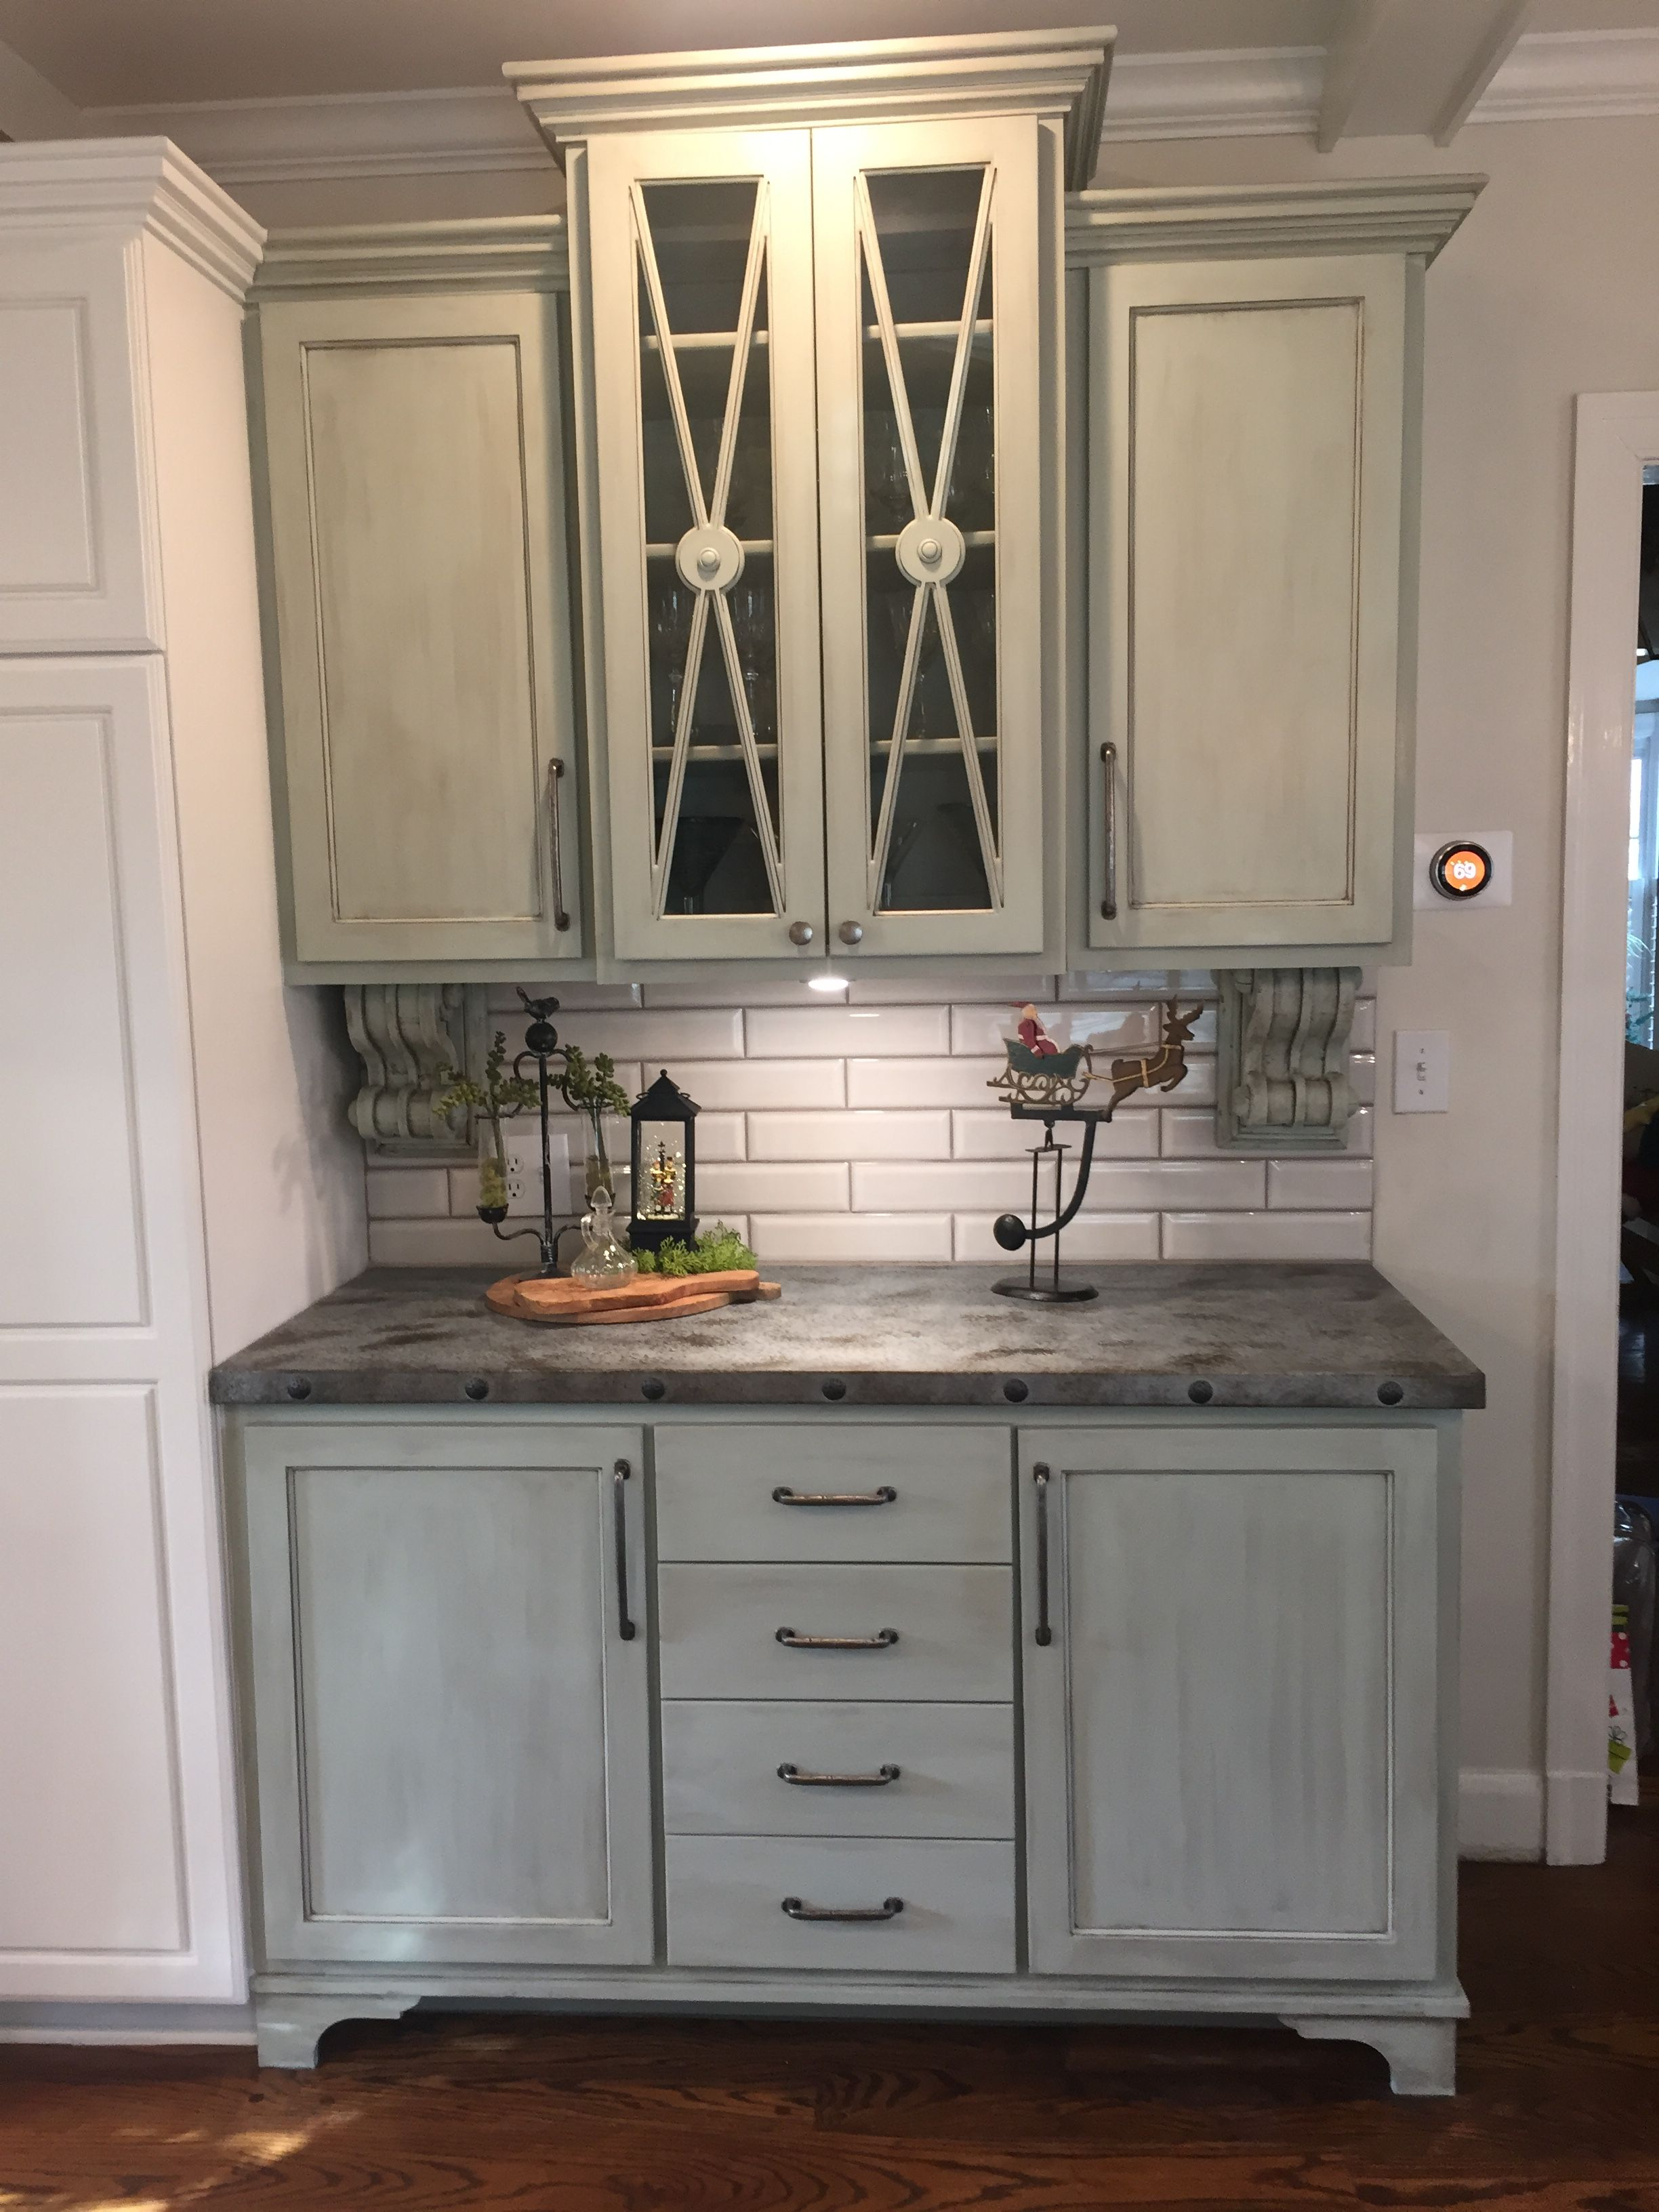 Our Kitchen Renovation Custom Built Cabinet With Antique Corbels Painted And Glazed Zinc Counterto Diy Kitchen Remodel Countertops Green Kitchen Countertops